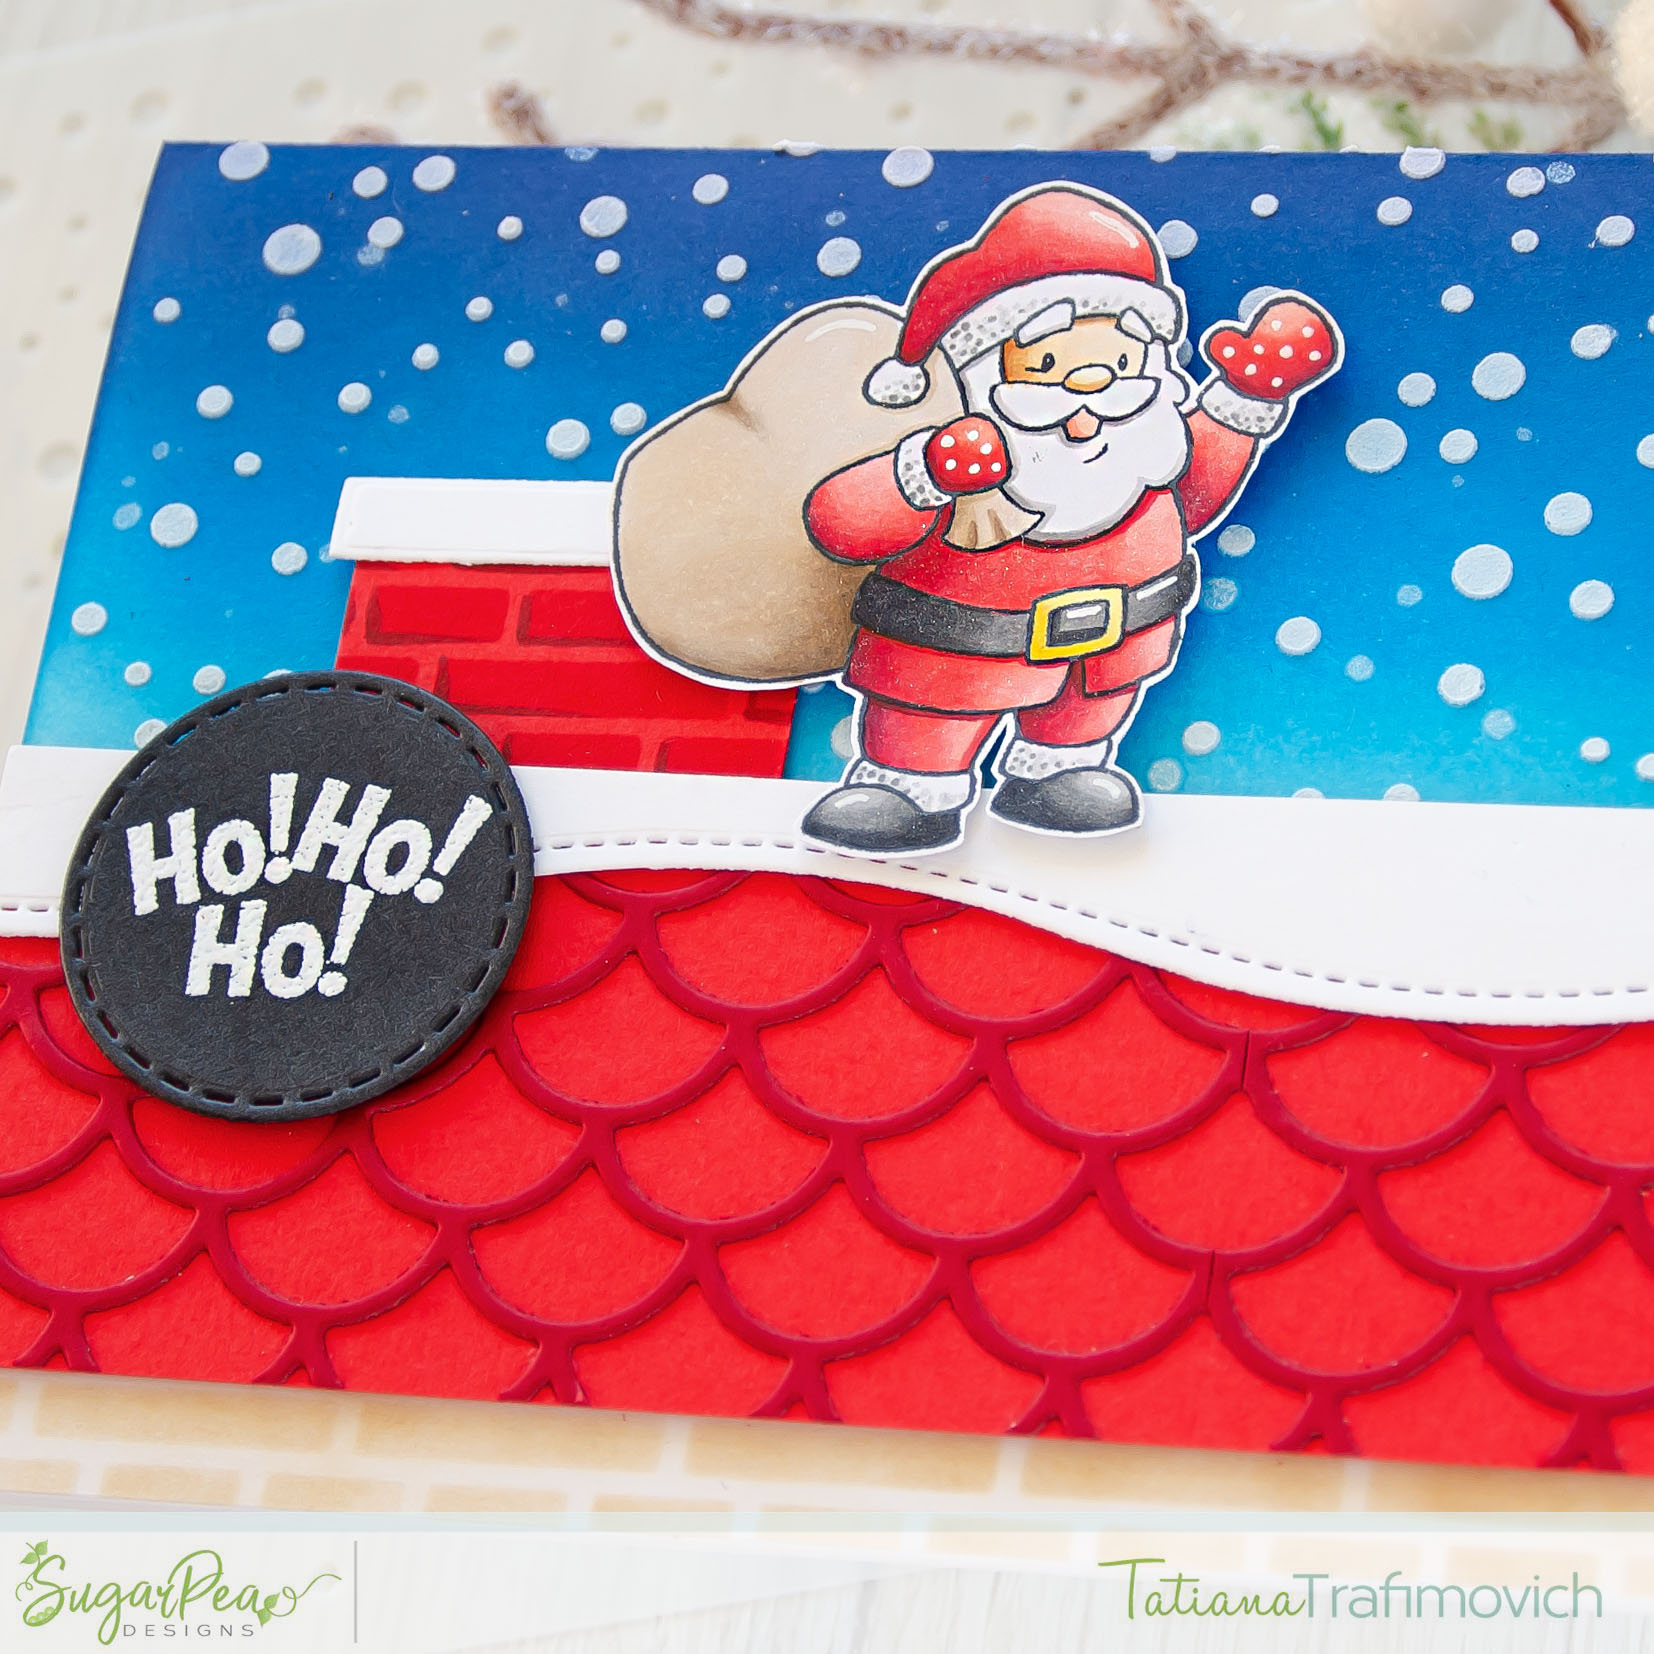 Ho! Ho! Ho! #handmade card by Tatiana Trafimovich #tatianacraftandart - Here Comes Santa Claus stamp set by SugarPea Designs #sugarpeadesigns